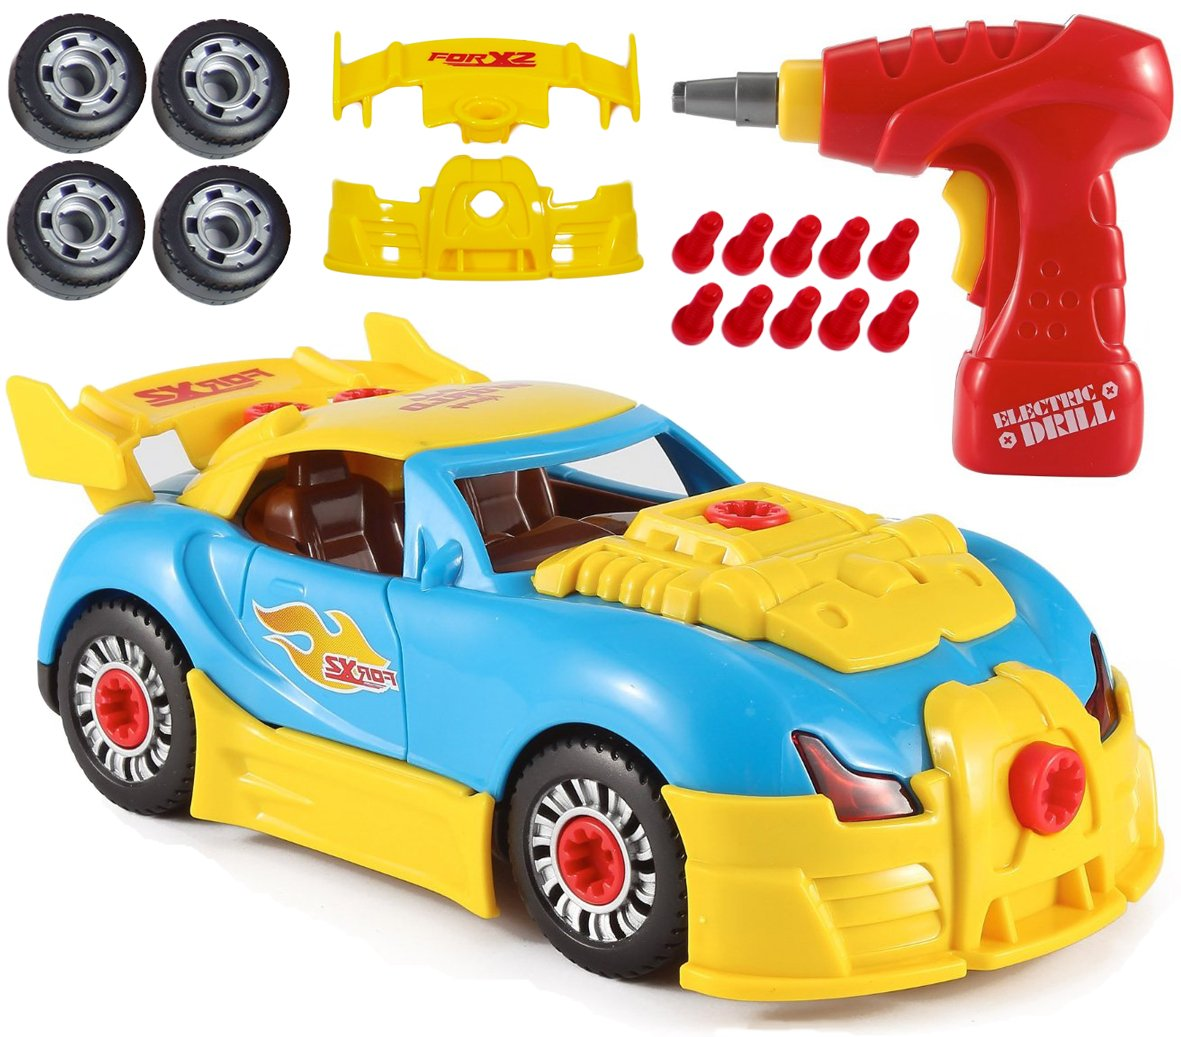 CoolToys Custom Take-A-Part Car Playset – Sports Car with Electric Play Drill and 30 Car Modification Pieces – Motion Activated Lights and Sounds by CoolToys (Image #1)